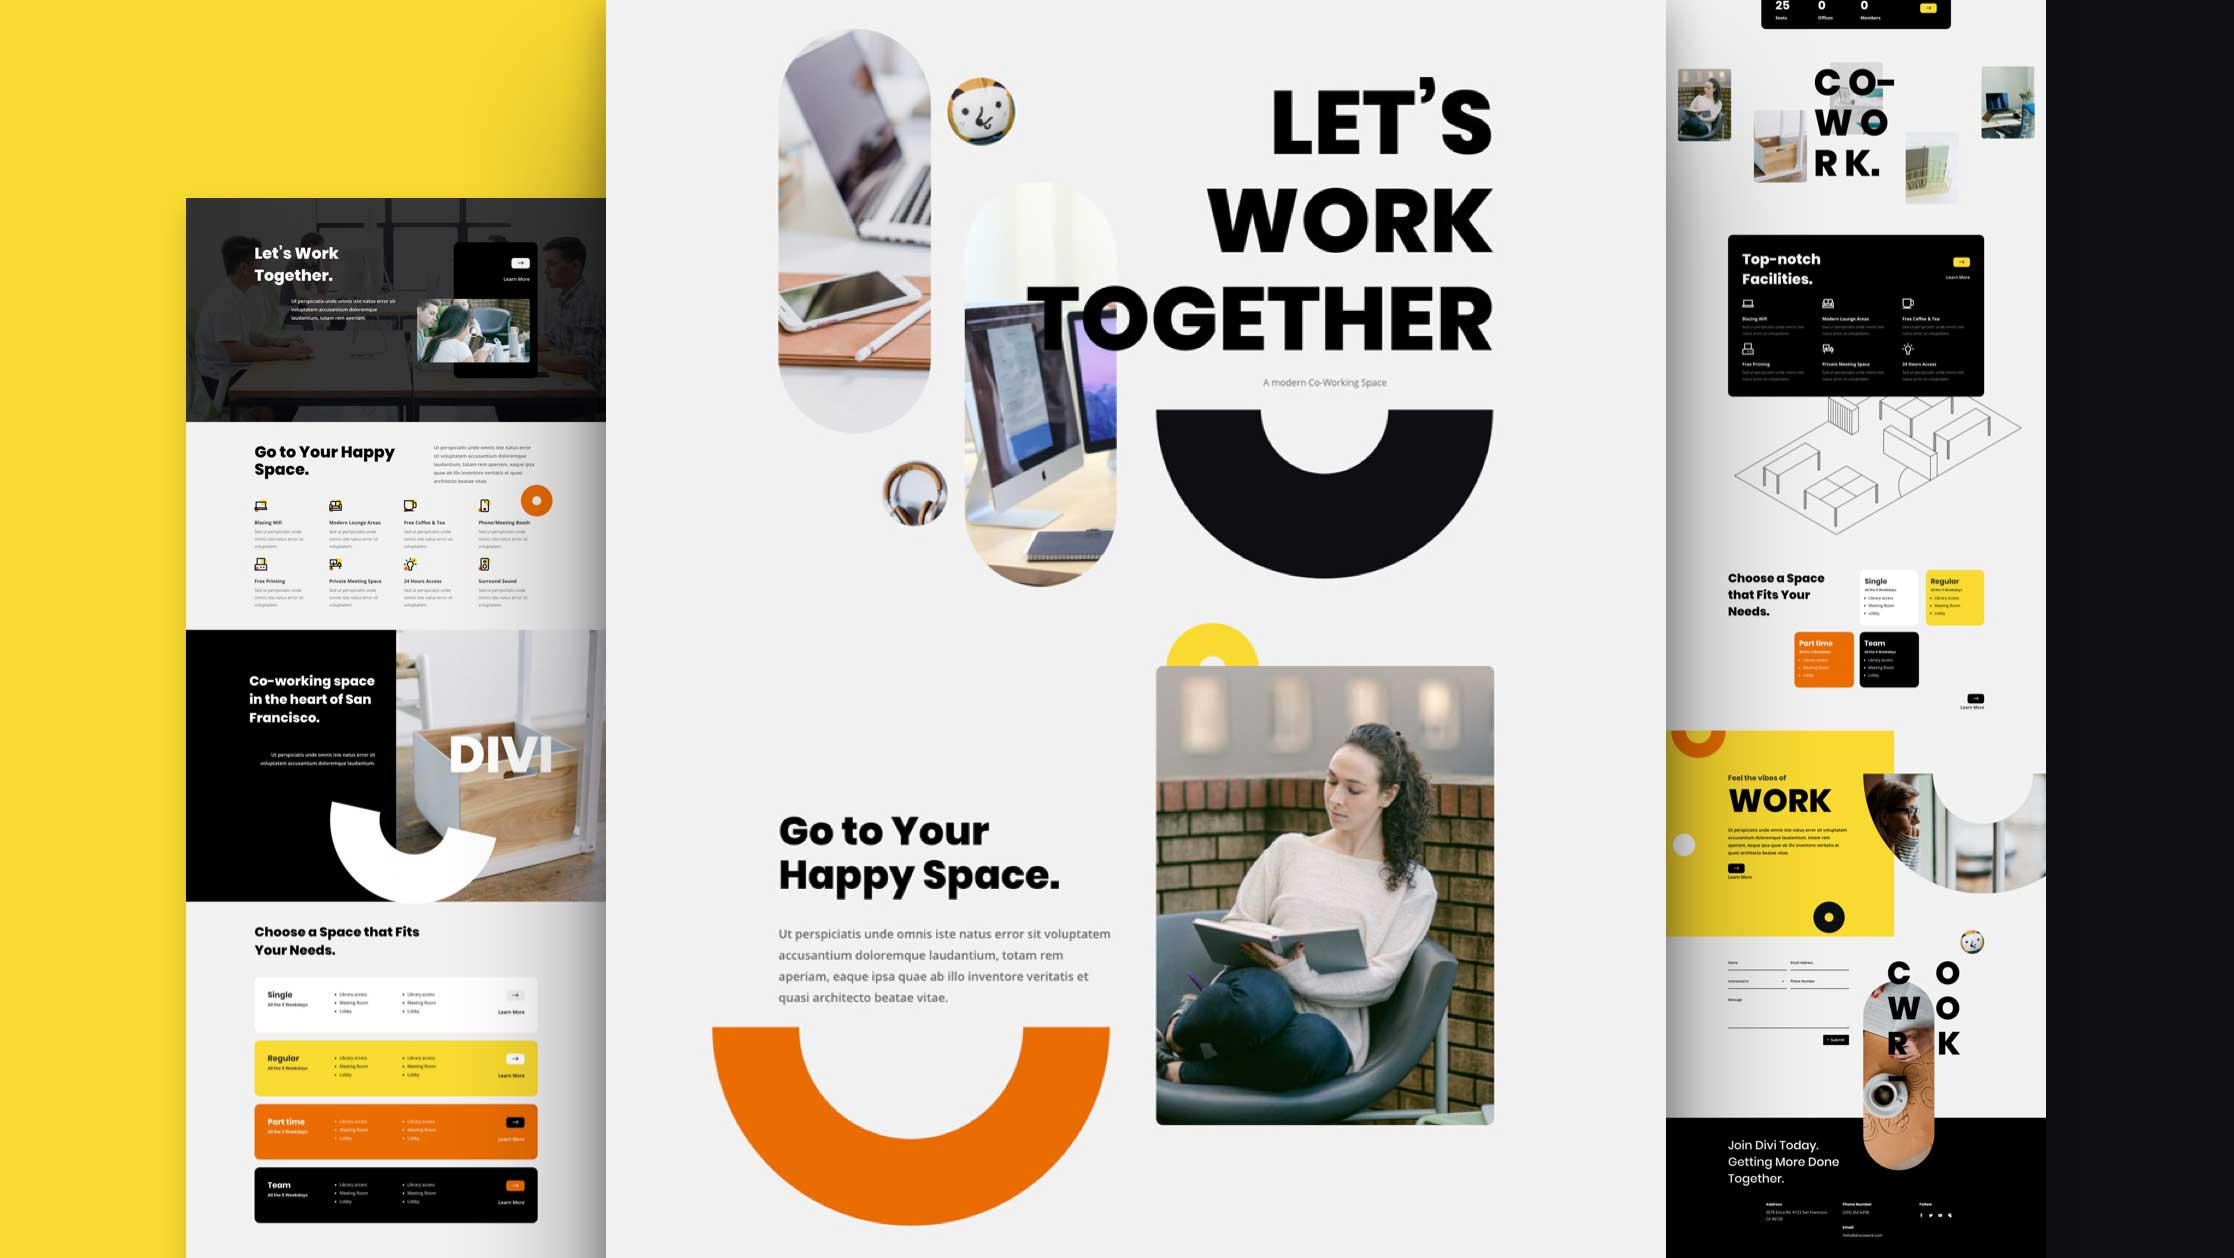 Coworking Space Design for Website